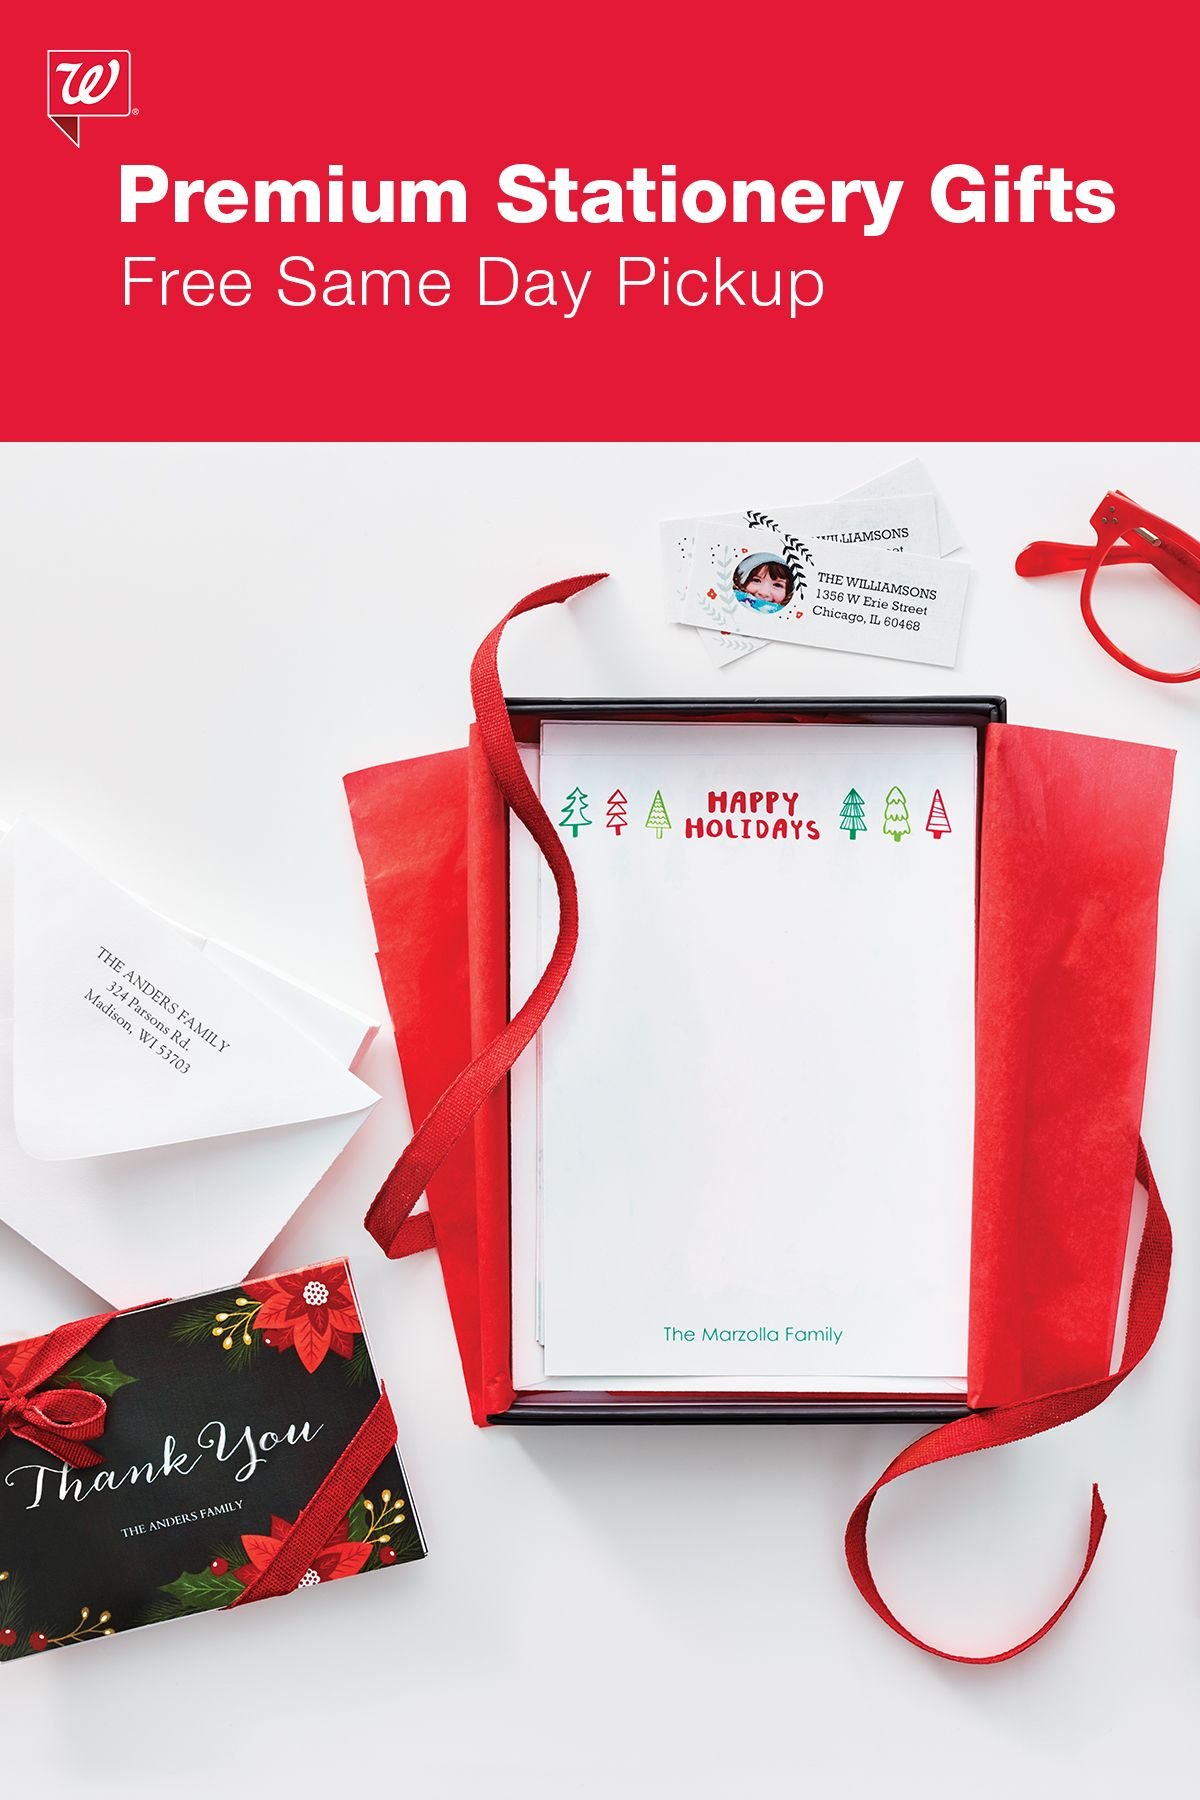 Give noteworthy gifts with personalized premium stationery